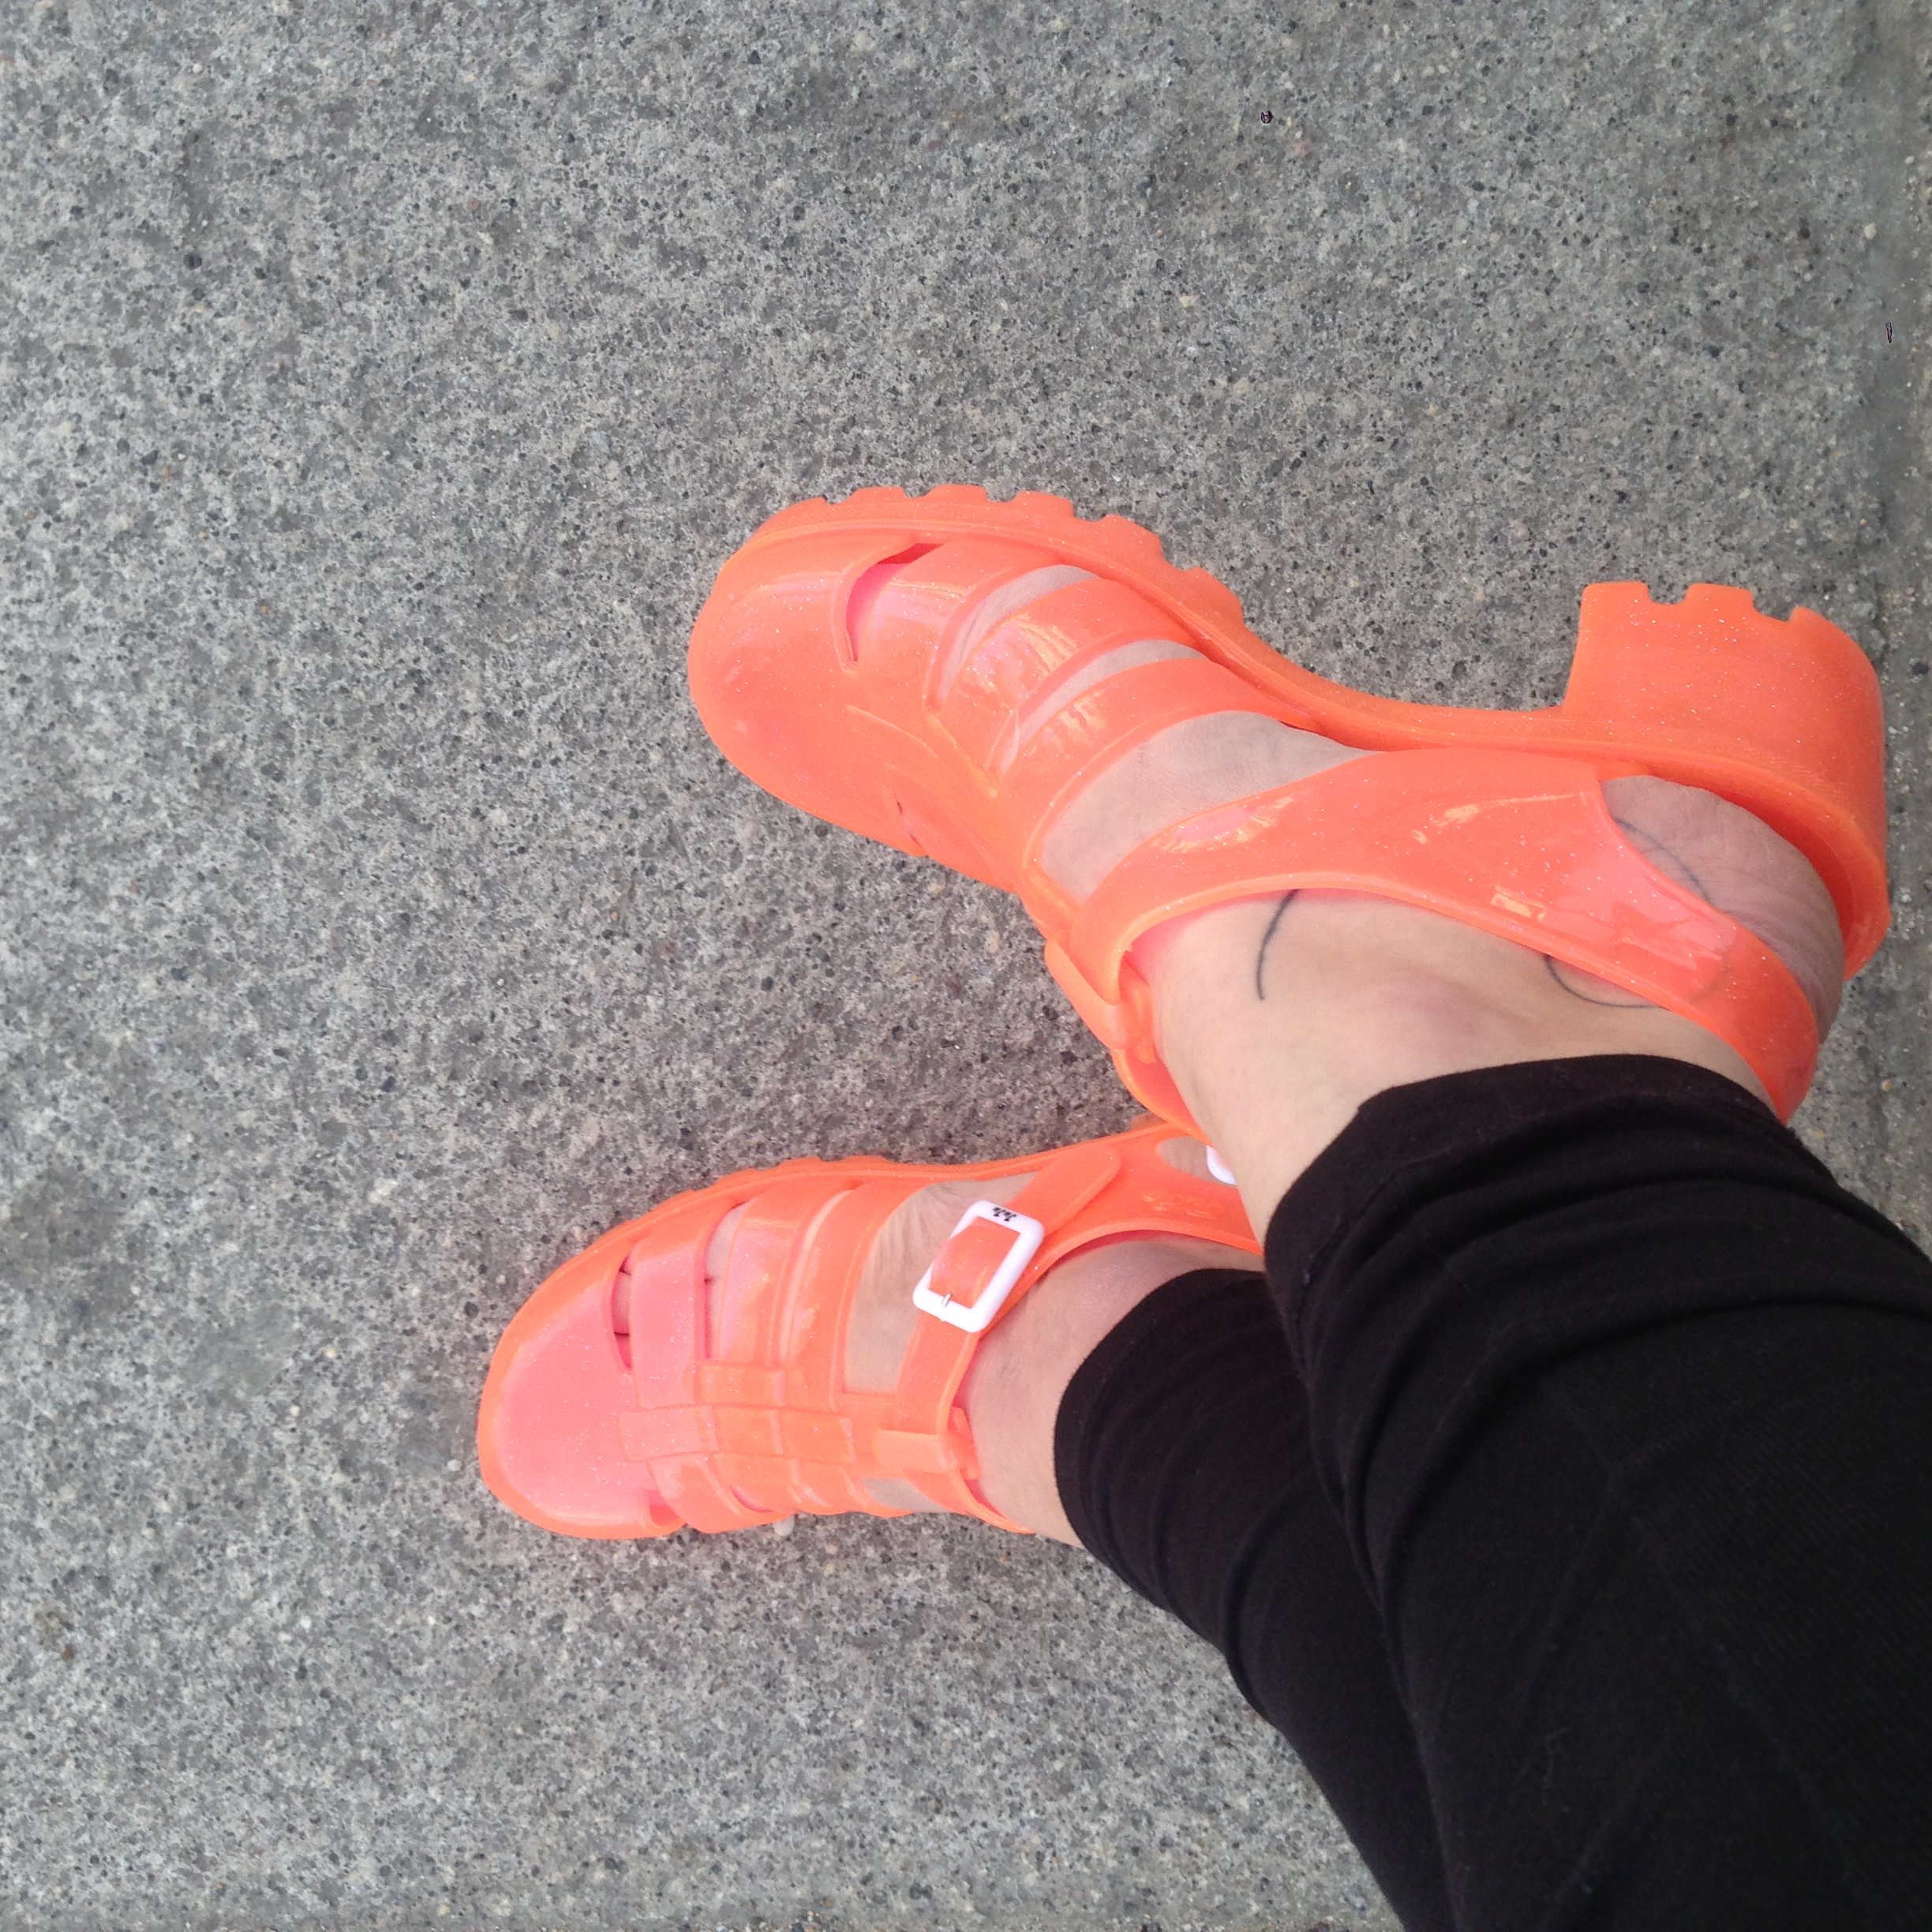 The Jellies I bought, a brand called Juju.